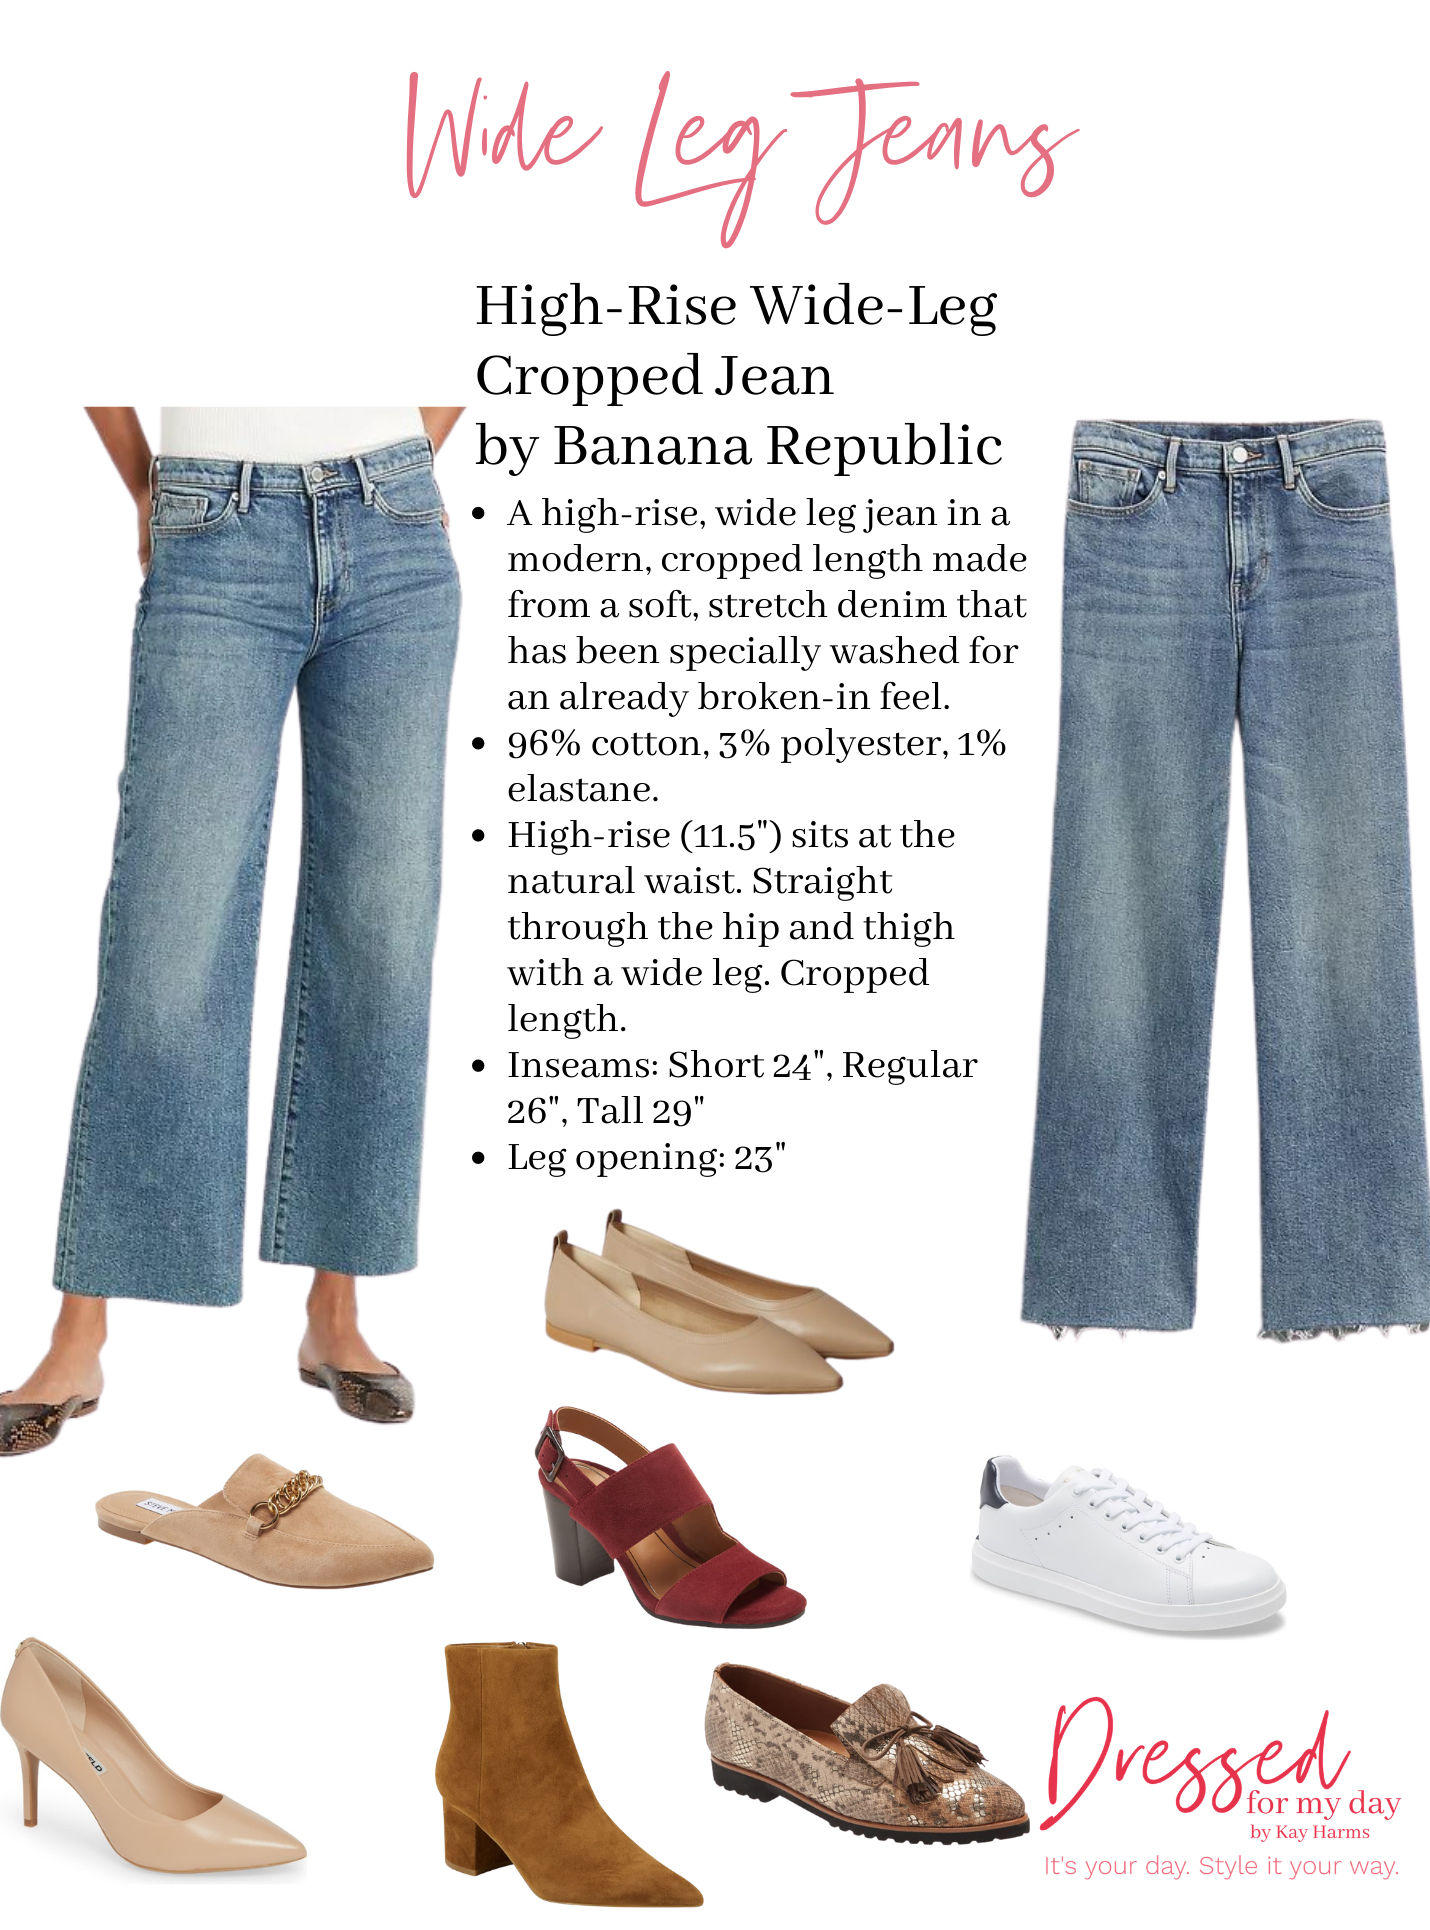 Shoes to Wear with Wide Leg Jeans